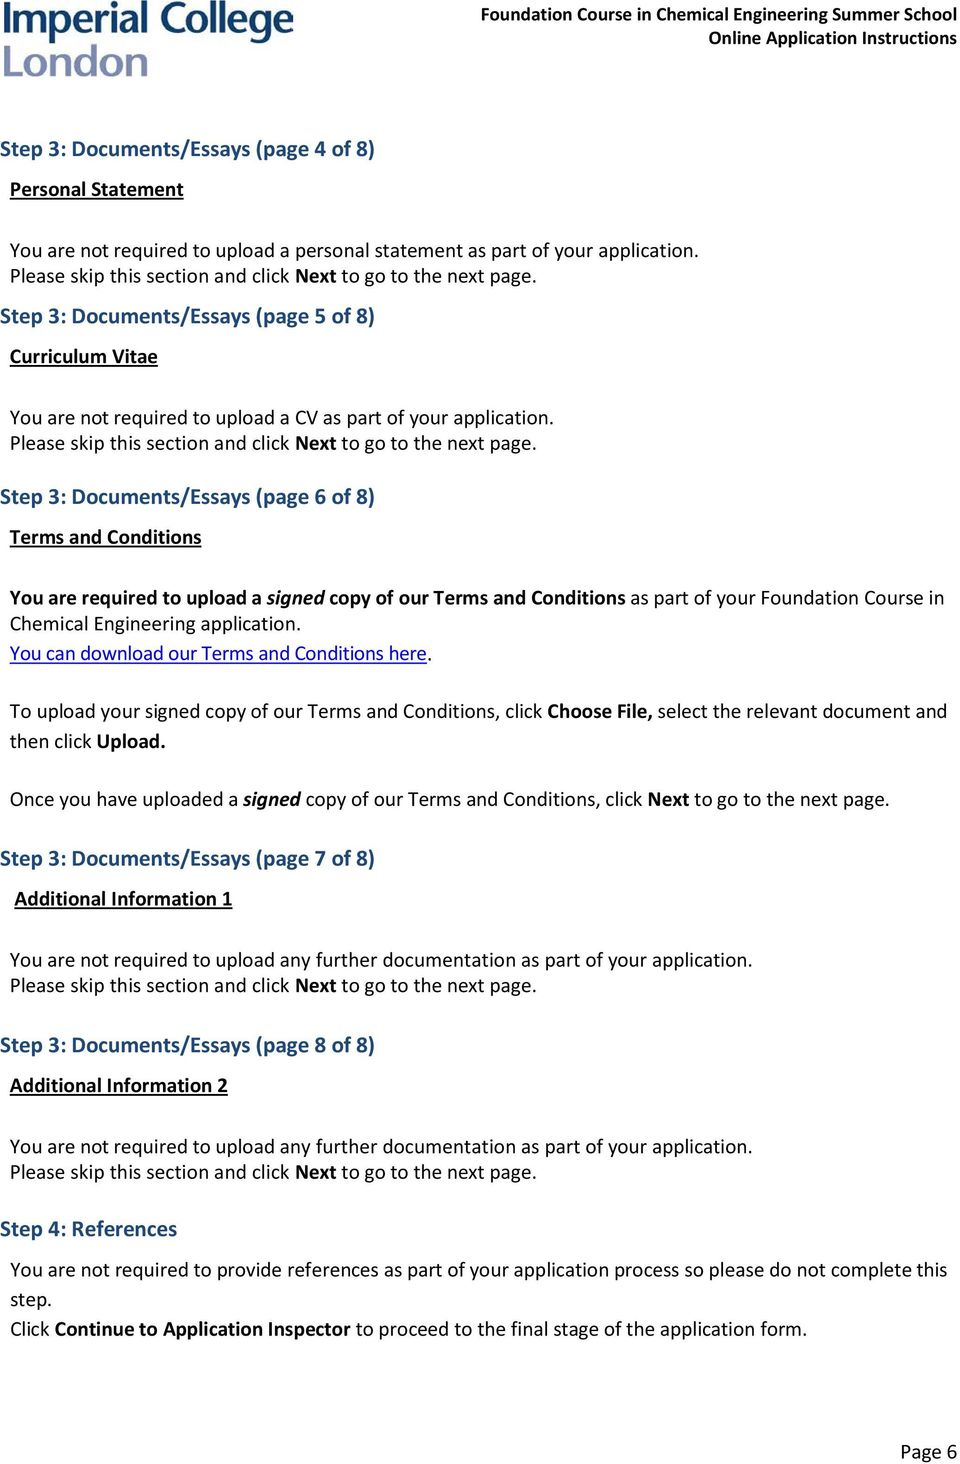 Step 3: Documents/Essays (page 6 of 8) Terms and Conditions You are required to upload a signed copy of our Terms and Conditions as part of your Foundation Course in Chemical Engineering application.